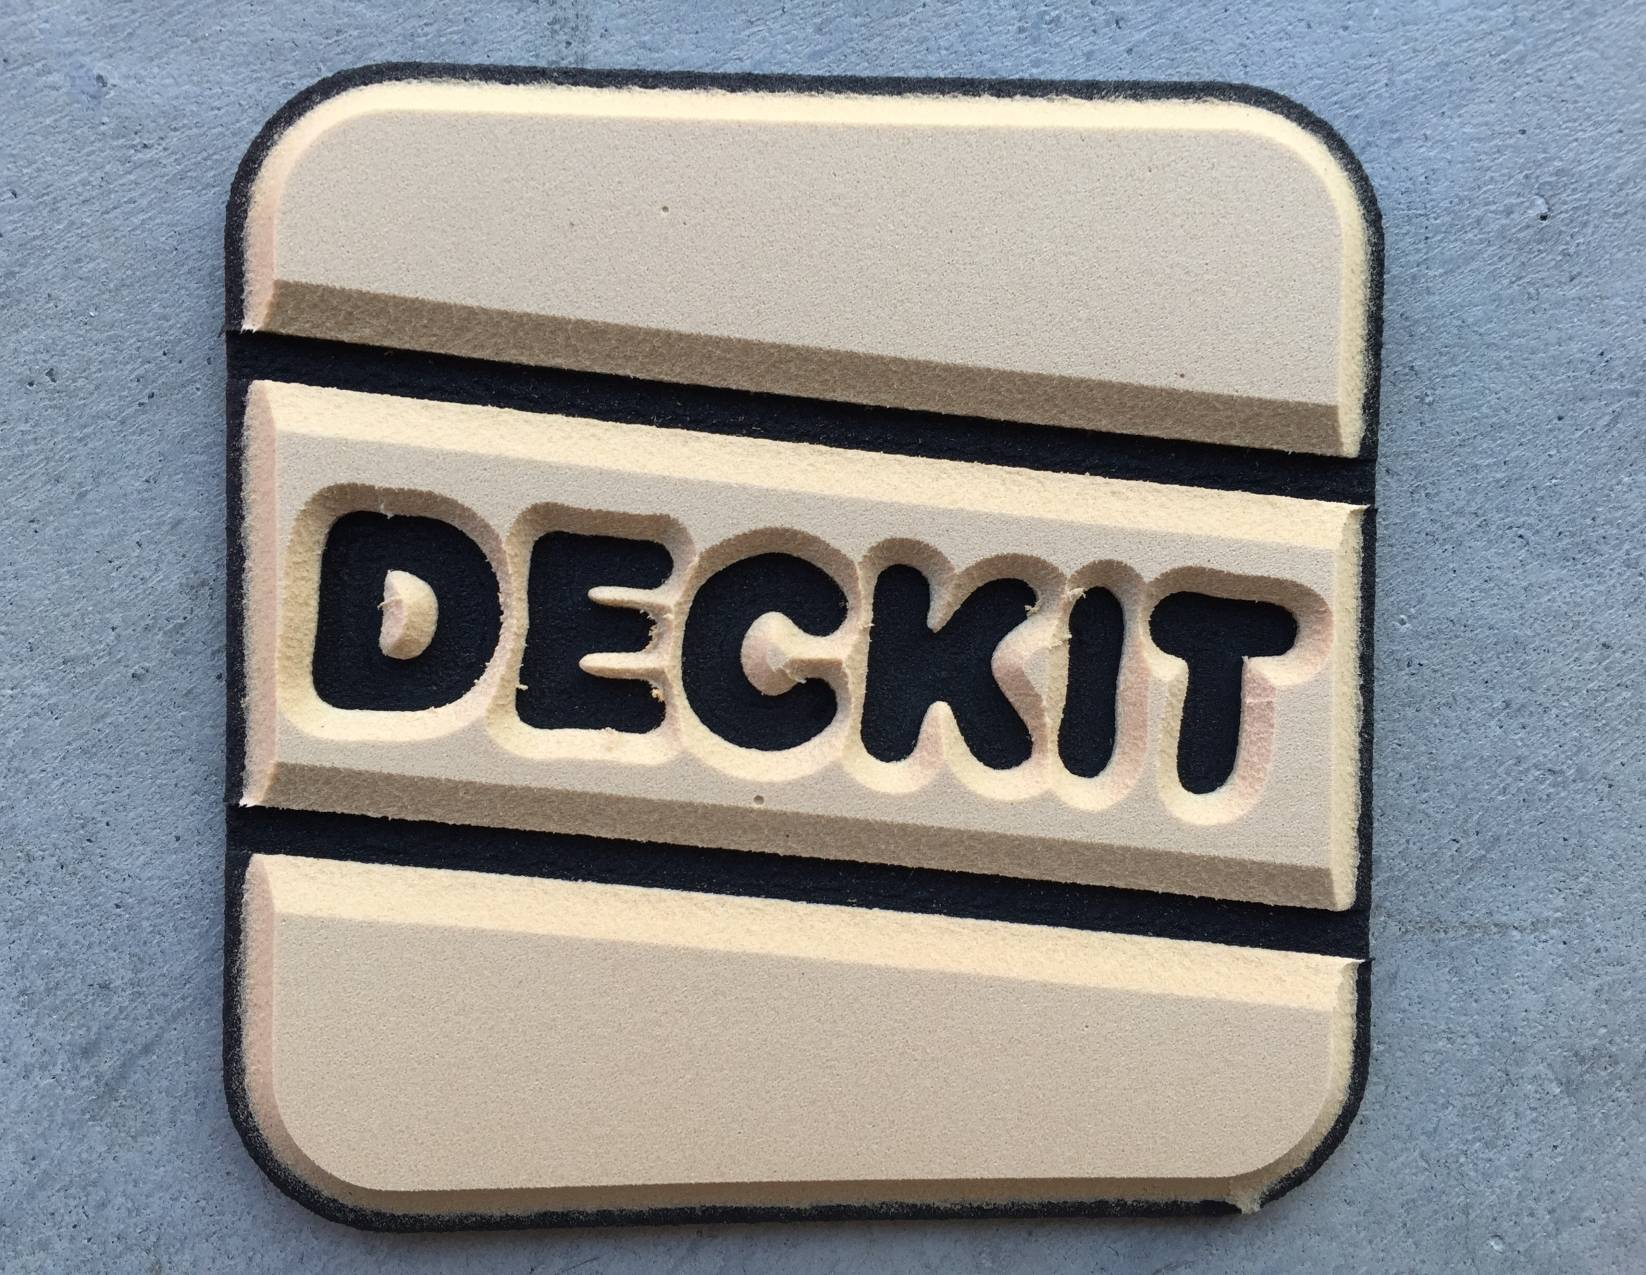 DECKIT-faux teak 6mm (4,5mm+1,5mm), two-coloured in caramell (33) and black (11)